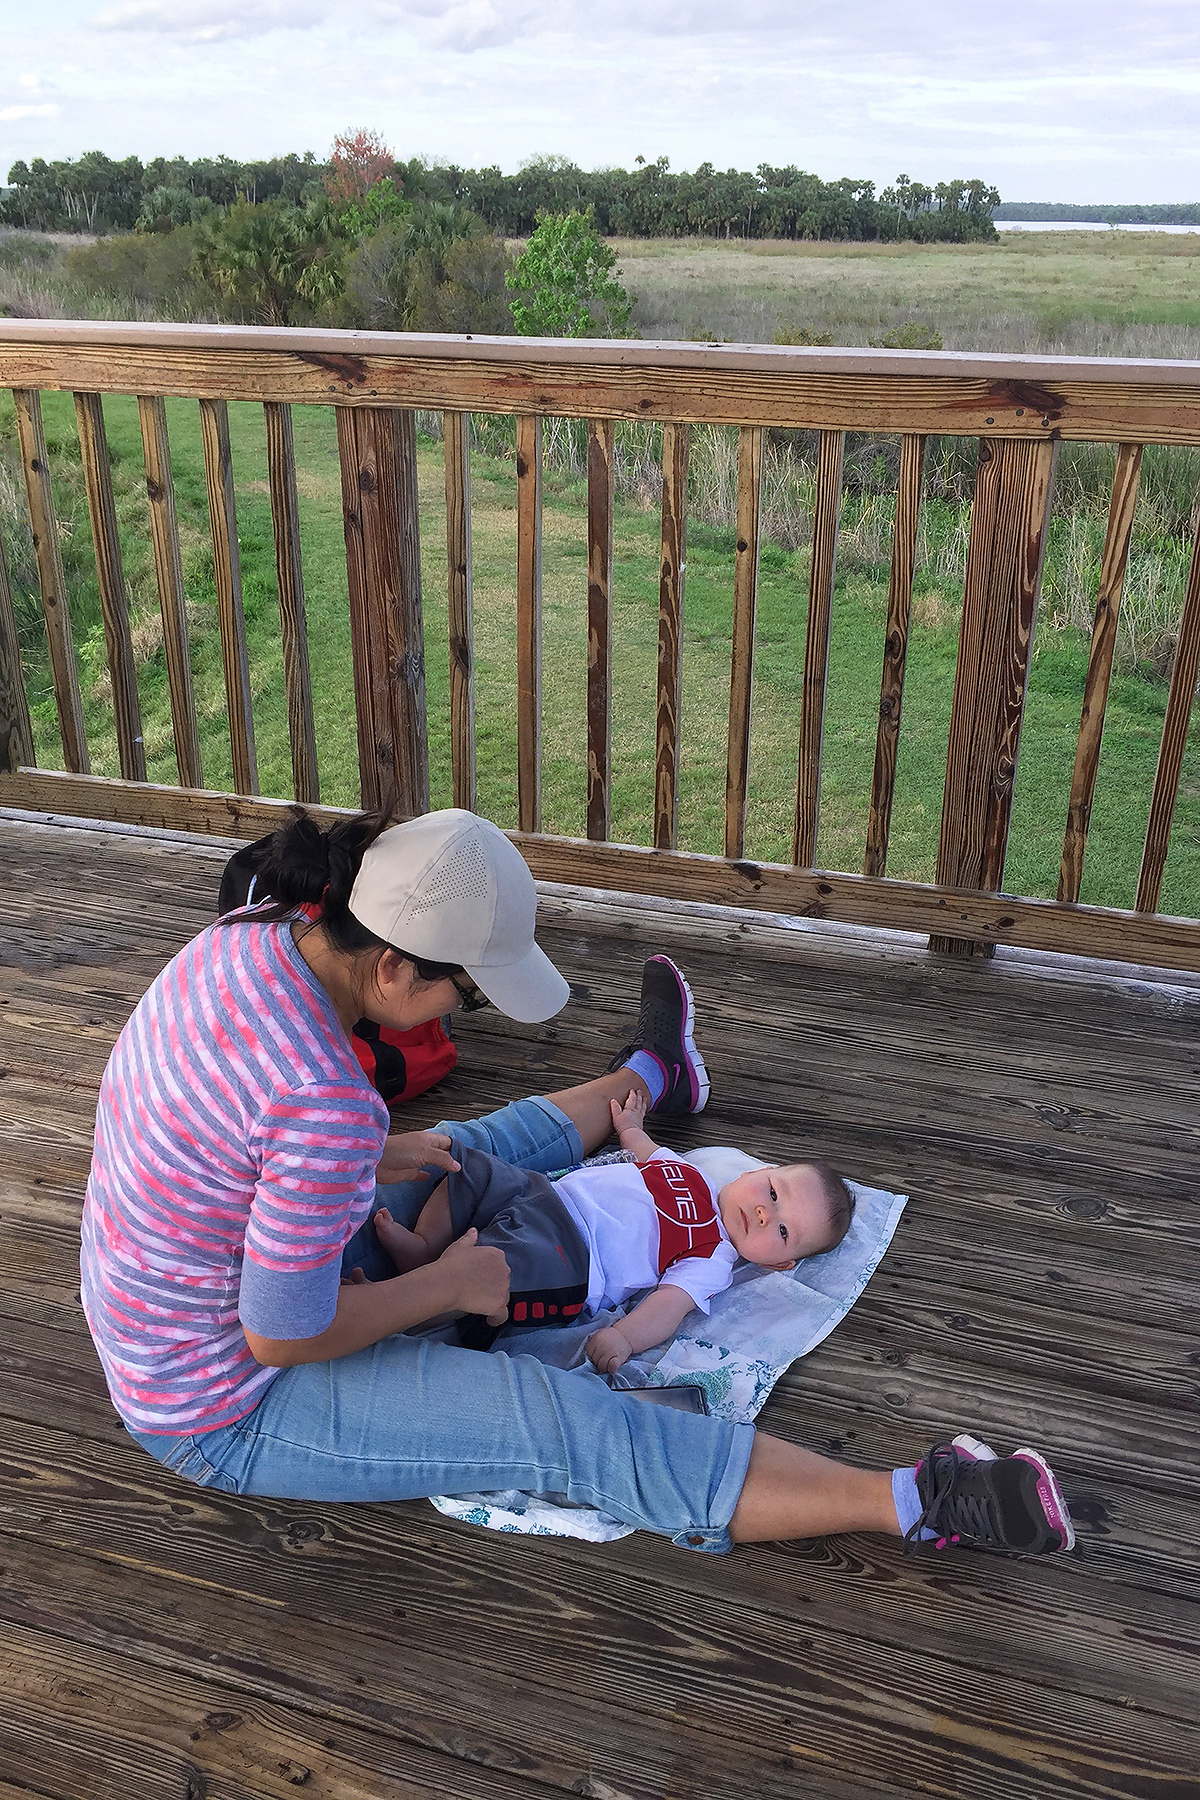 Elaine and Tiny in the observation tower at Lake Woodruff National Wildlife Refuge. The top eBird hot spot in Volusia County, Woodruff is known as a breeding site of Swallow-tailed Kite. Sandhill Crane also breed here, and Bald Eagle are regularly noted. (Craig Brelsford)